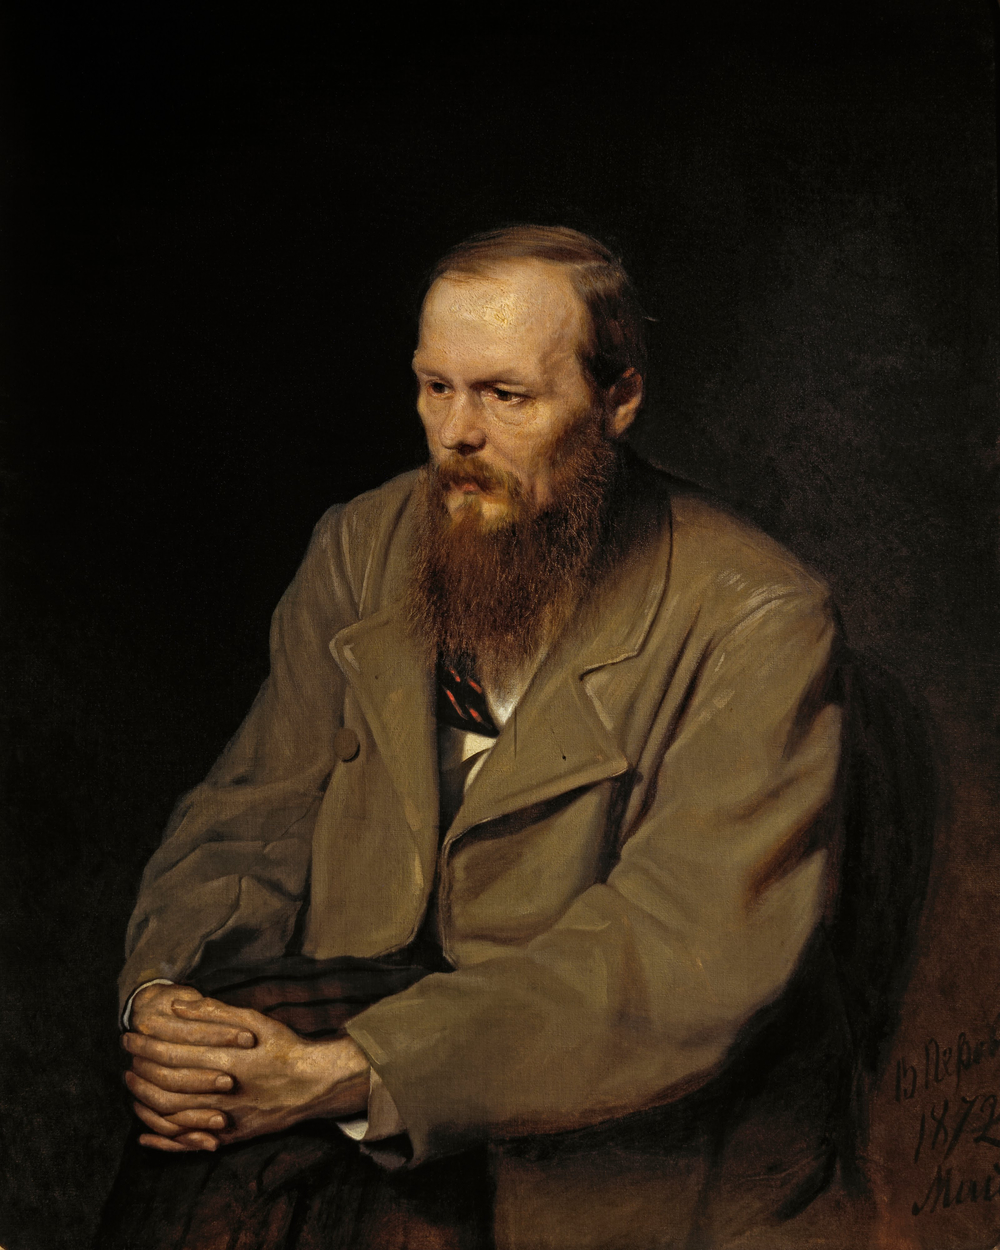 Portrait of Fyodor Dostoyevsky by Vasily Perov, 1871